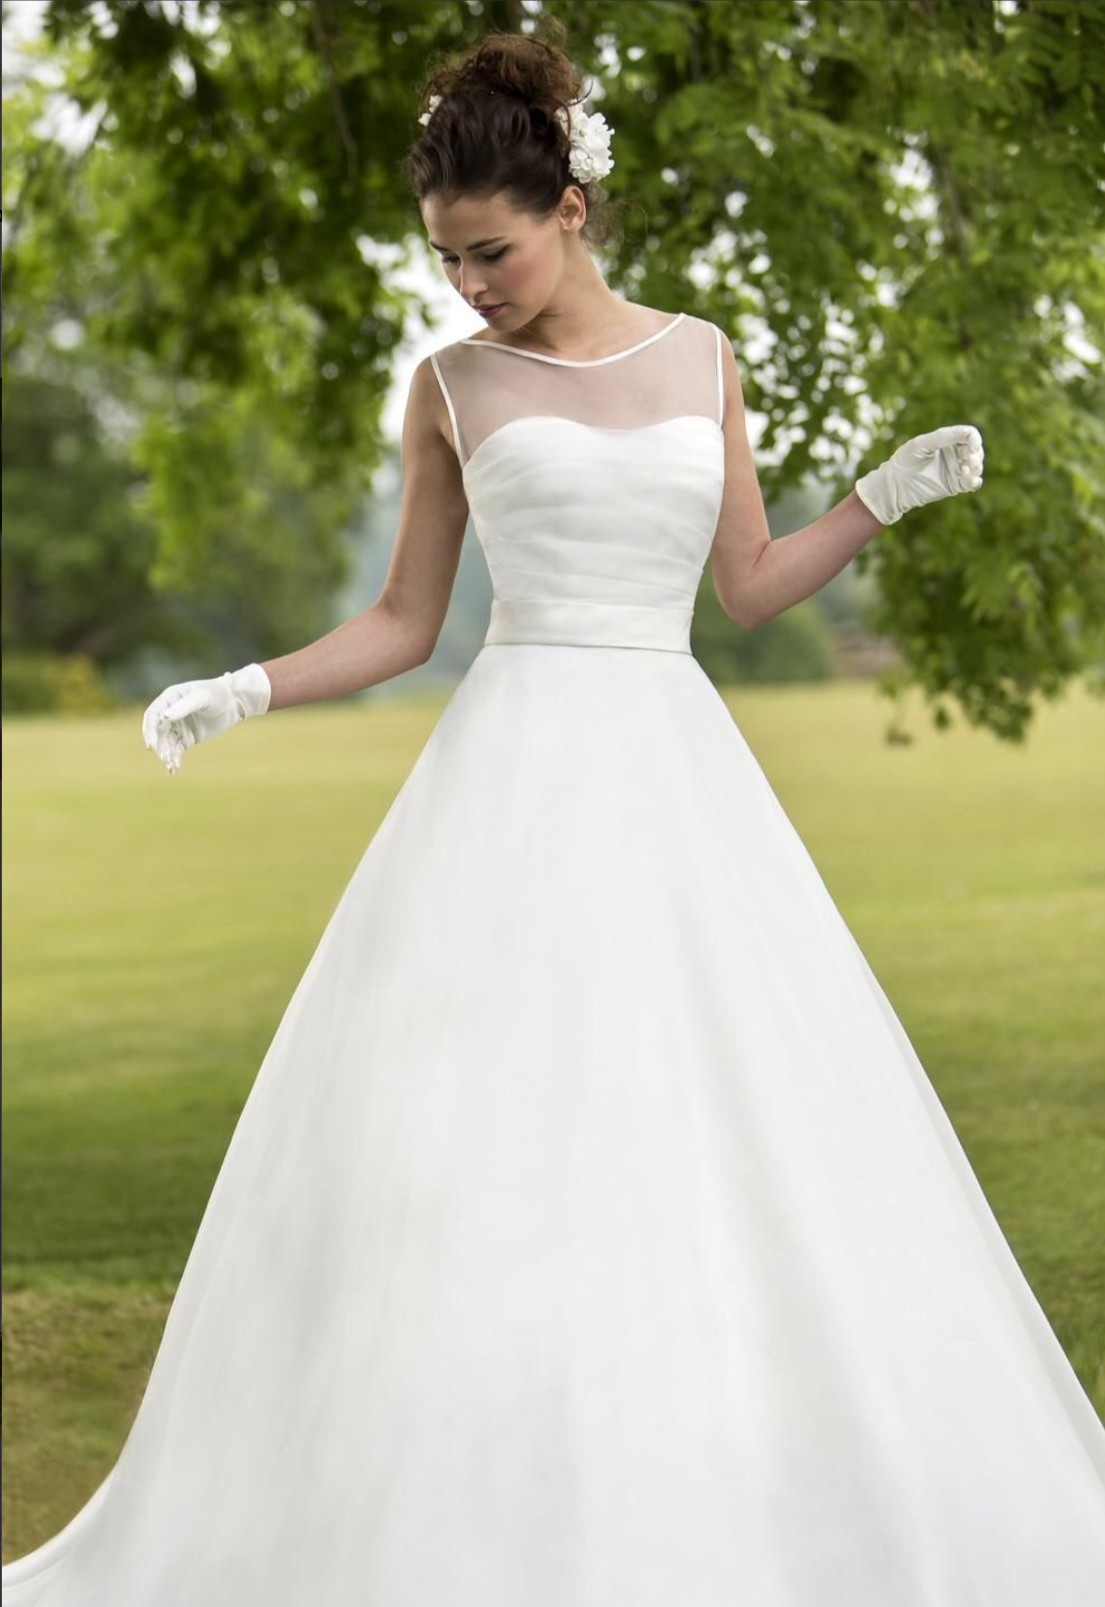 True bride w126 second hand wedding dress on sale 68 off for Second hand wedding dresses for sale